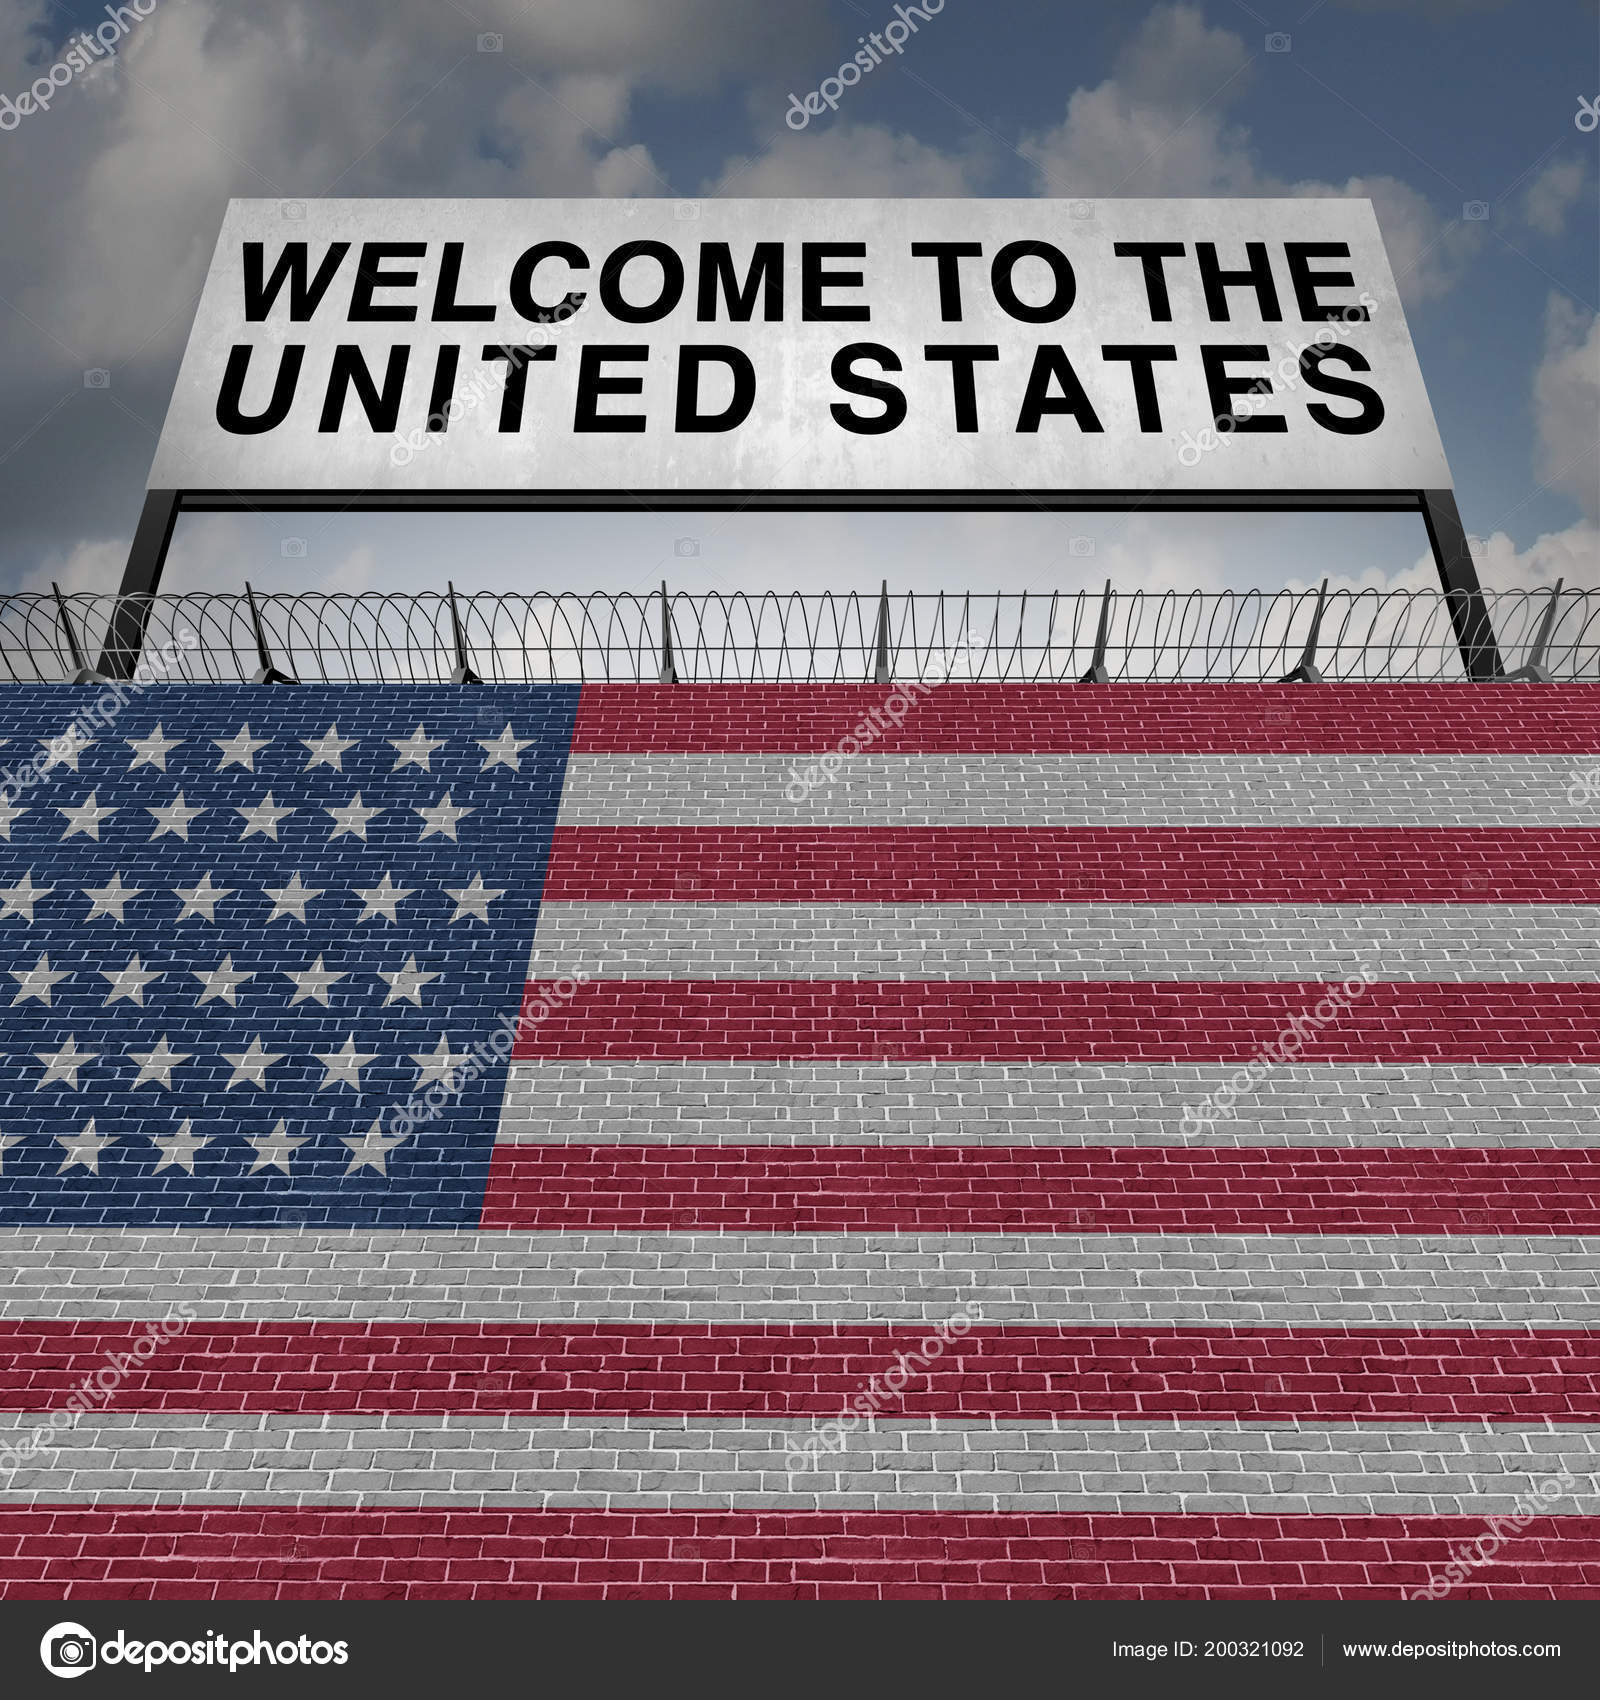 United States Immigration Border Wall Security Immigrants